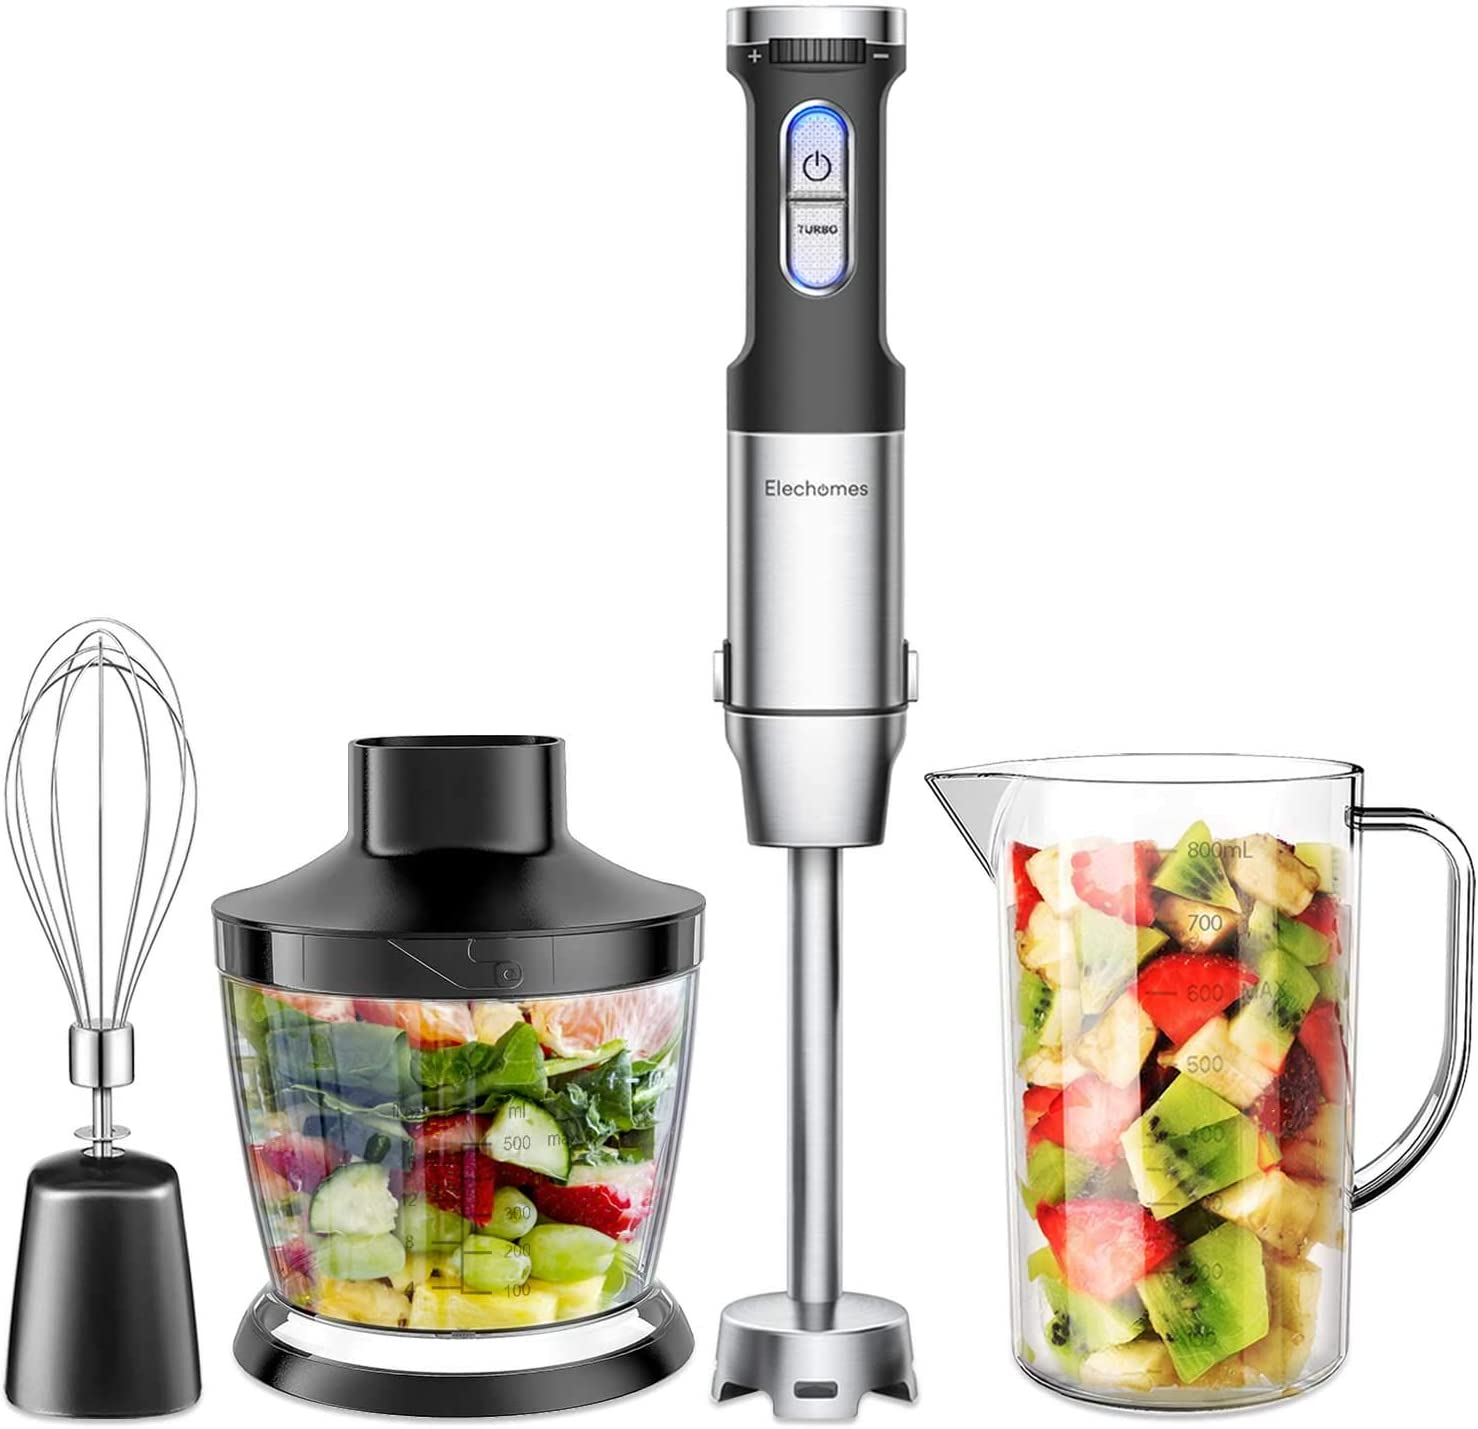 Amazon coupon code for 4-in-1 Hand Immersion Blender with 800W